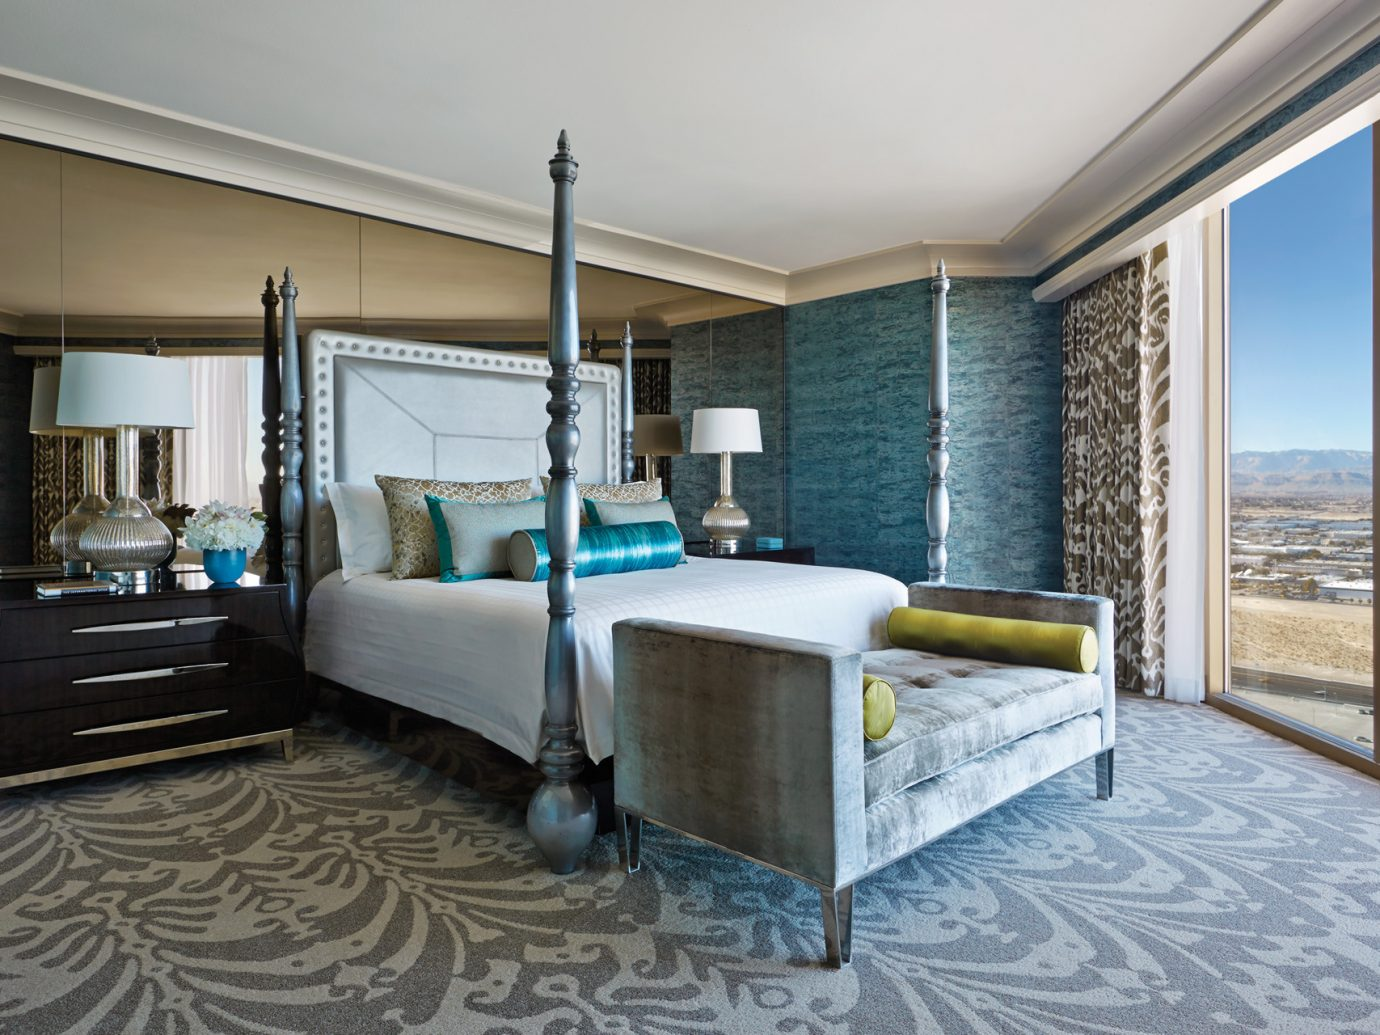 Bedroom in the Presidential suite at the Four Seasons Las Vegas